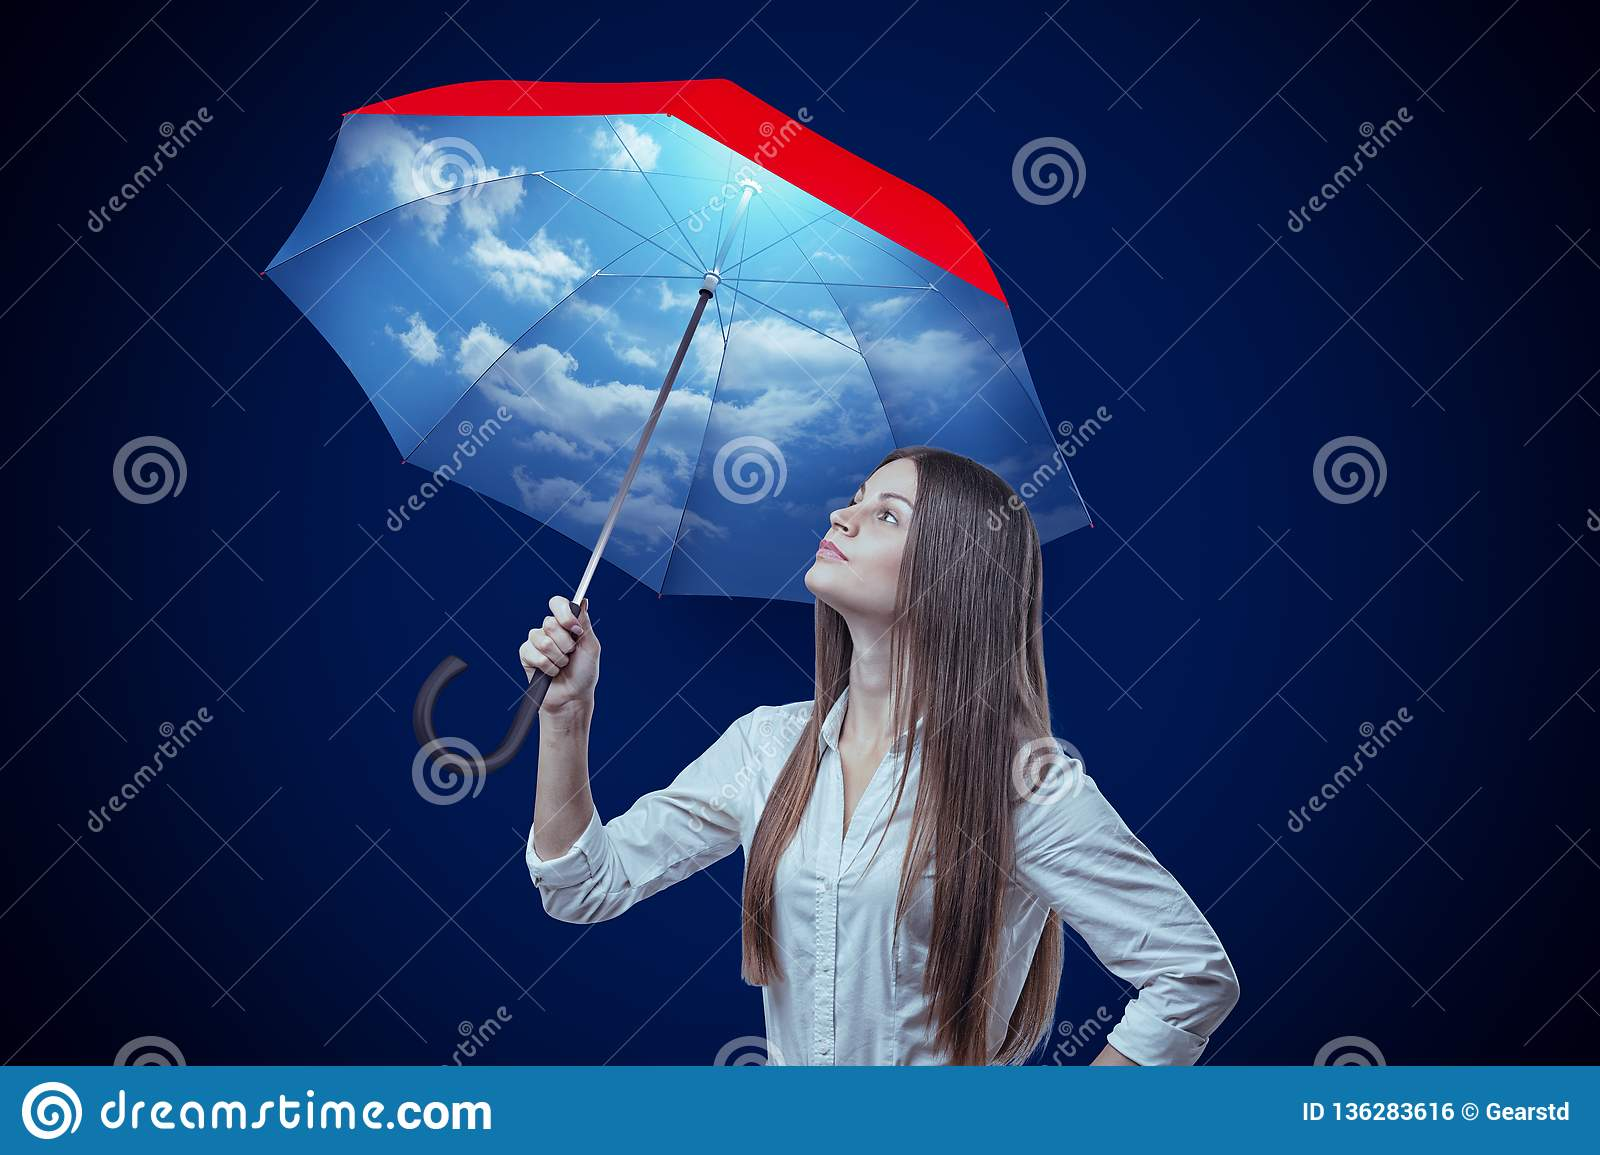 Young woman with sky design umbrella on dark blue background